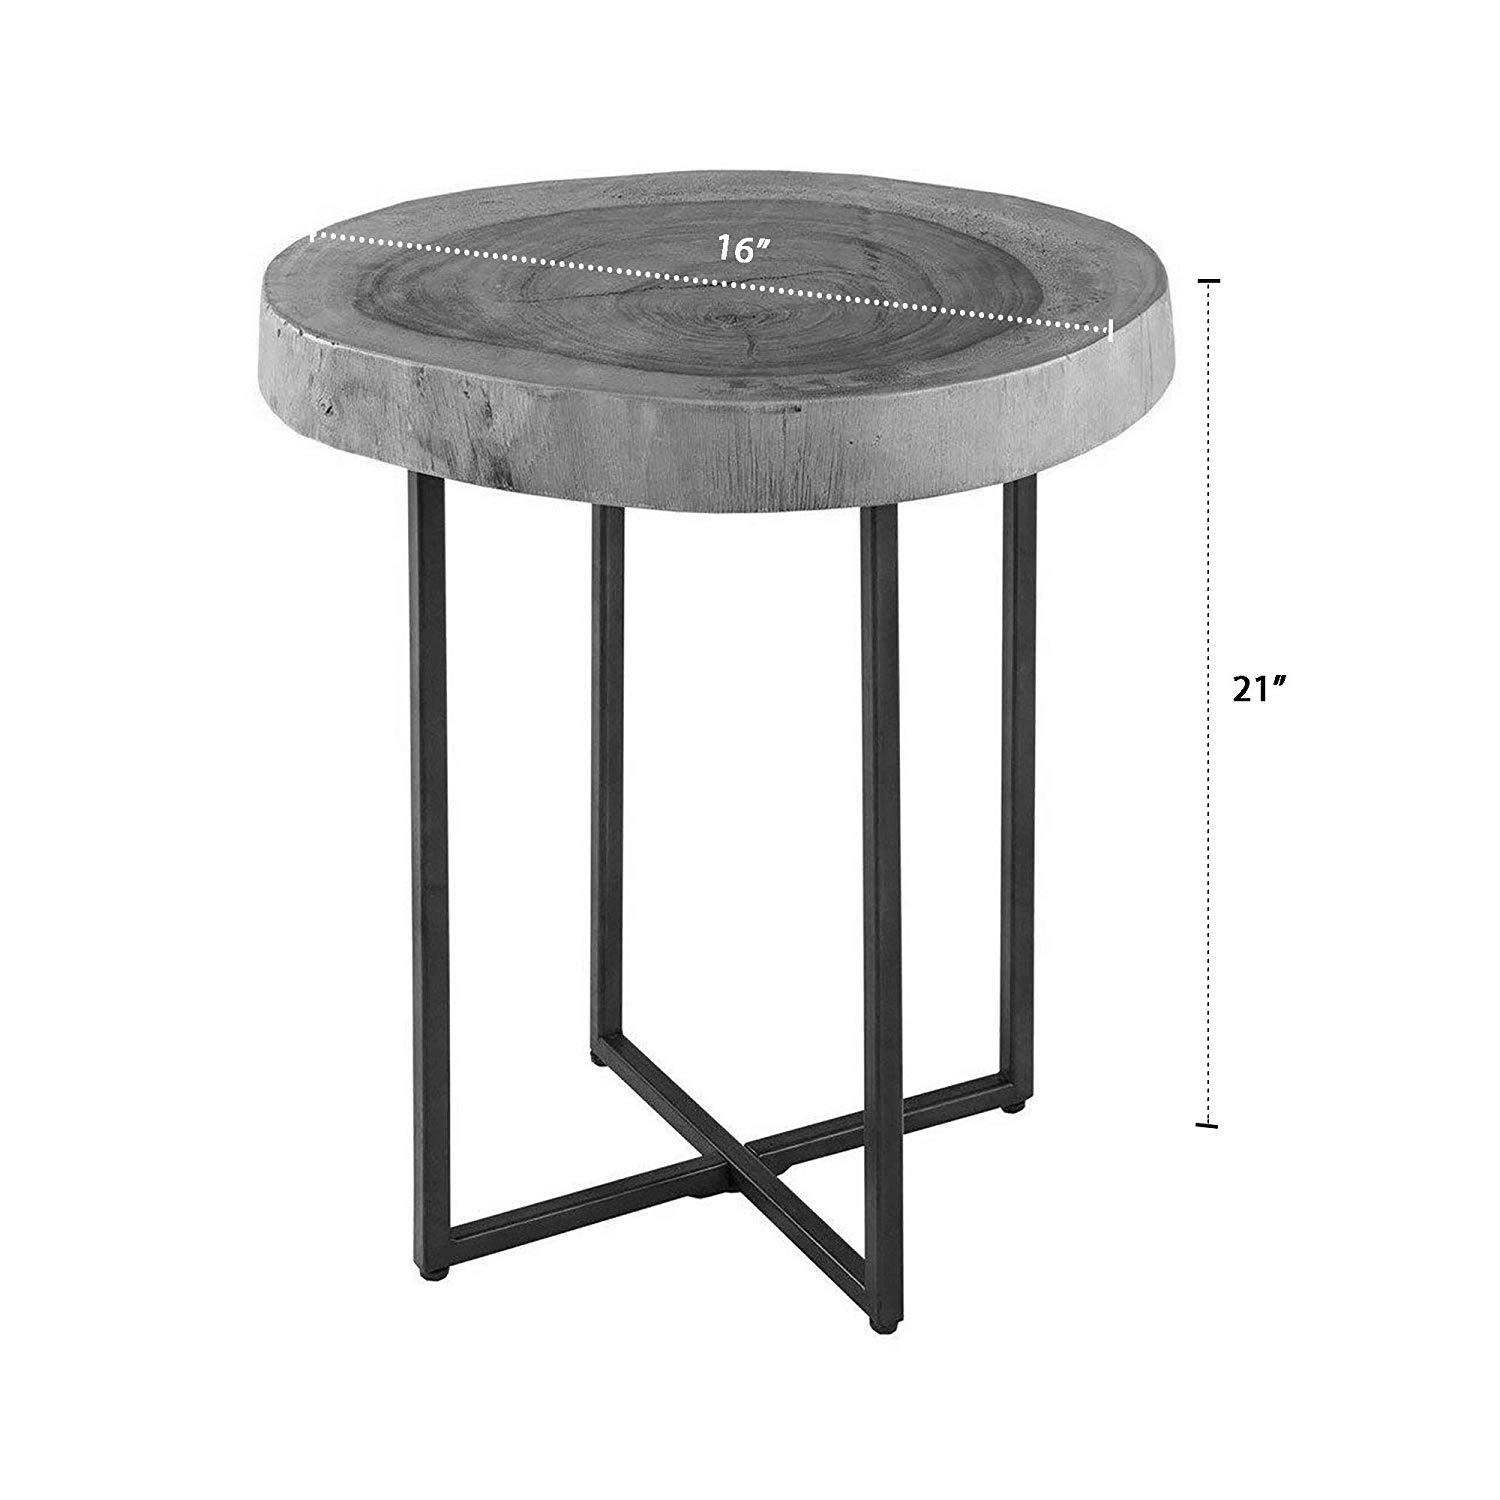 ink ivy arcadia accent tables metal wood side table small black end natural matt modern style piece authentic block for living leons dining sets brown glass top coffee mexican